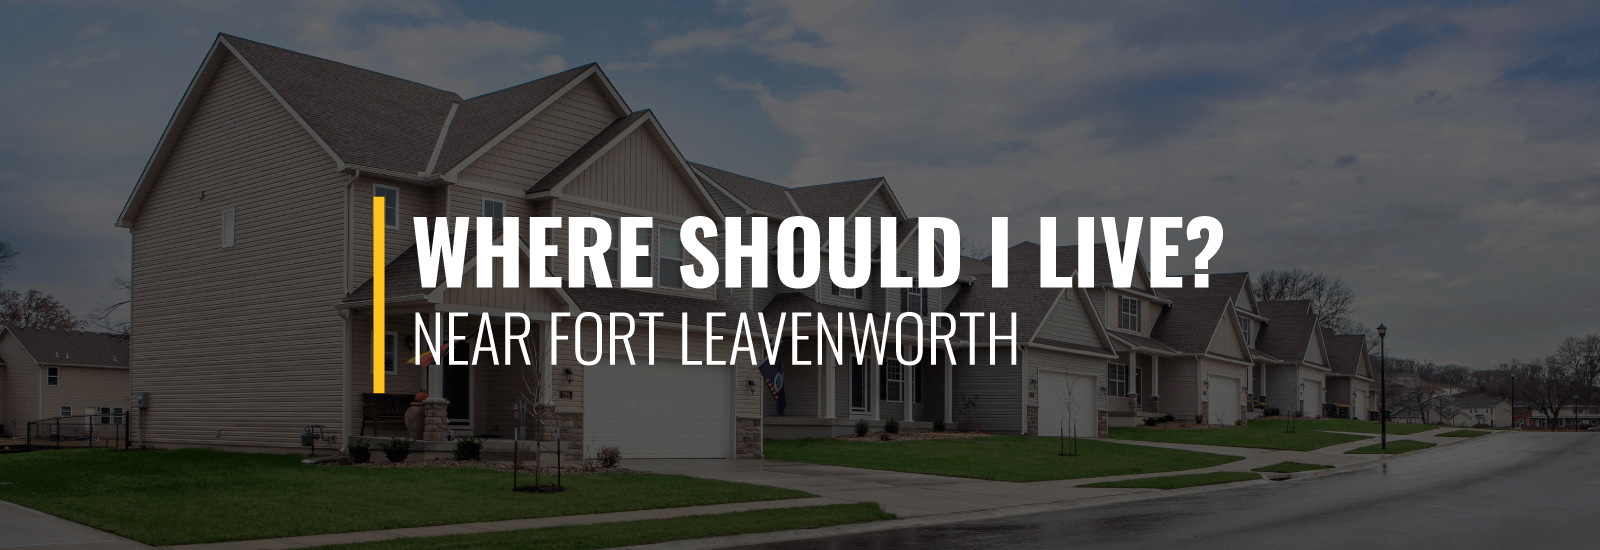 Where Should I Live Near Fort Leavenworth?